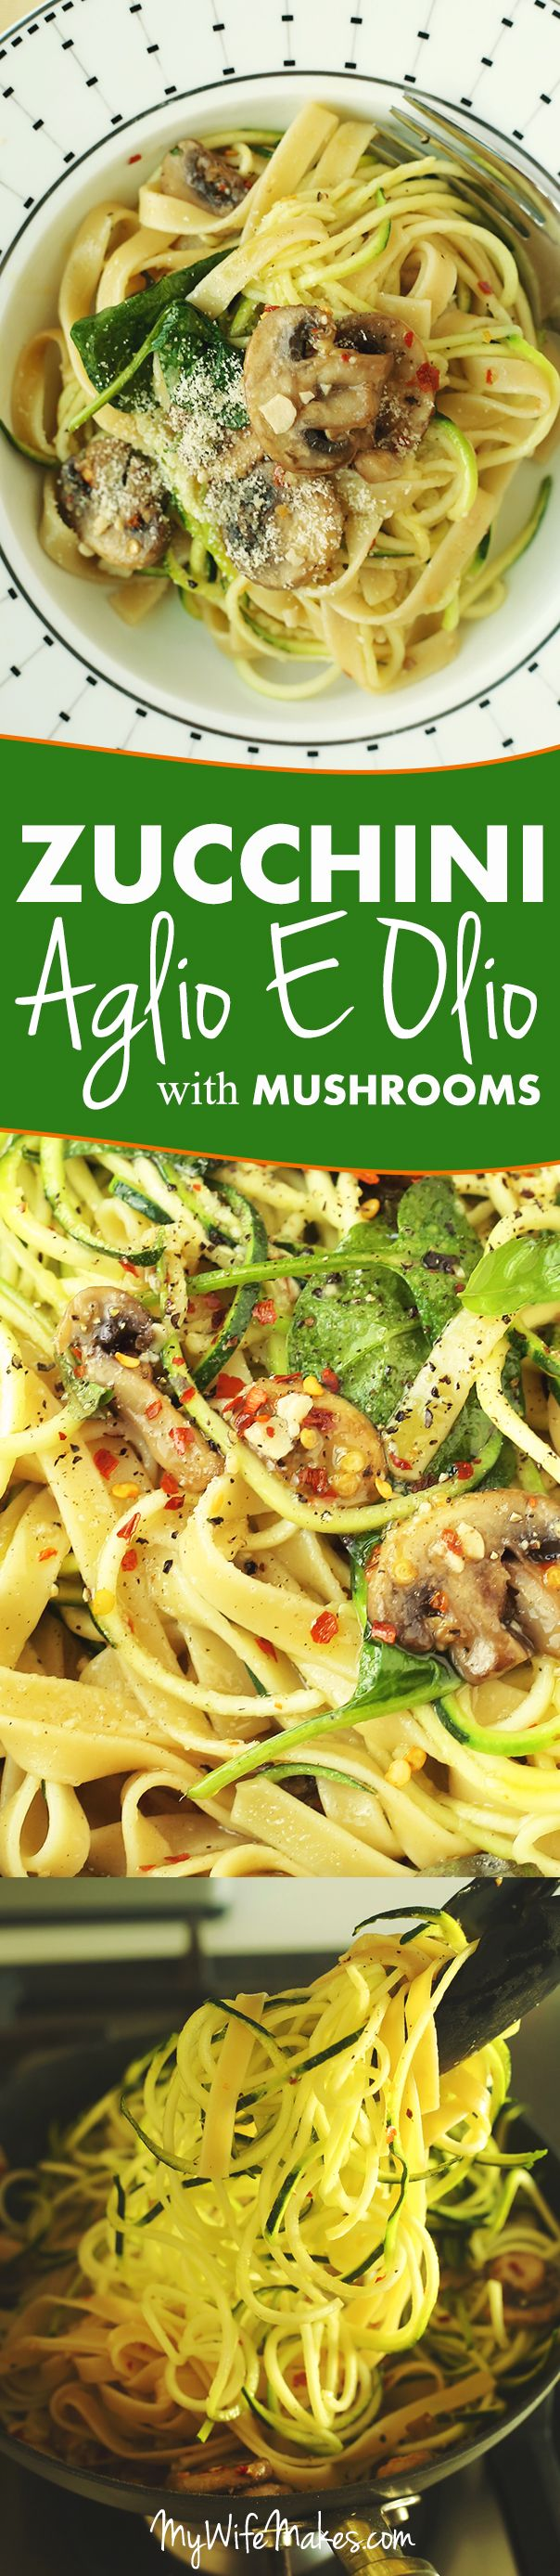 Zucchini Aglio E Olio with Mushrooms: A simple, healthy, and sublimely tasty lunch / dinner dish made with mushrooms, zucchini, basil, garlic, chilli flakes, orange infused olive oil, and fettuccine pasta. #vegan #aglioeolio #pasta #healthy #mushroom #zucchini